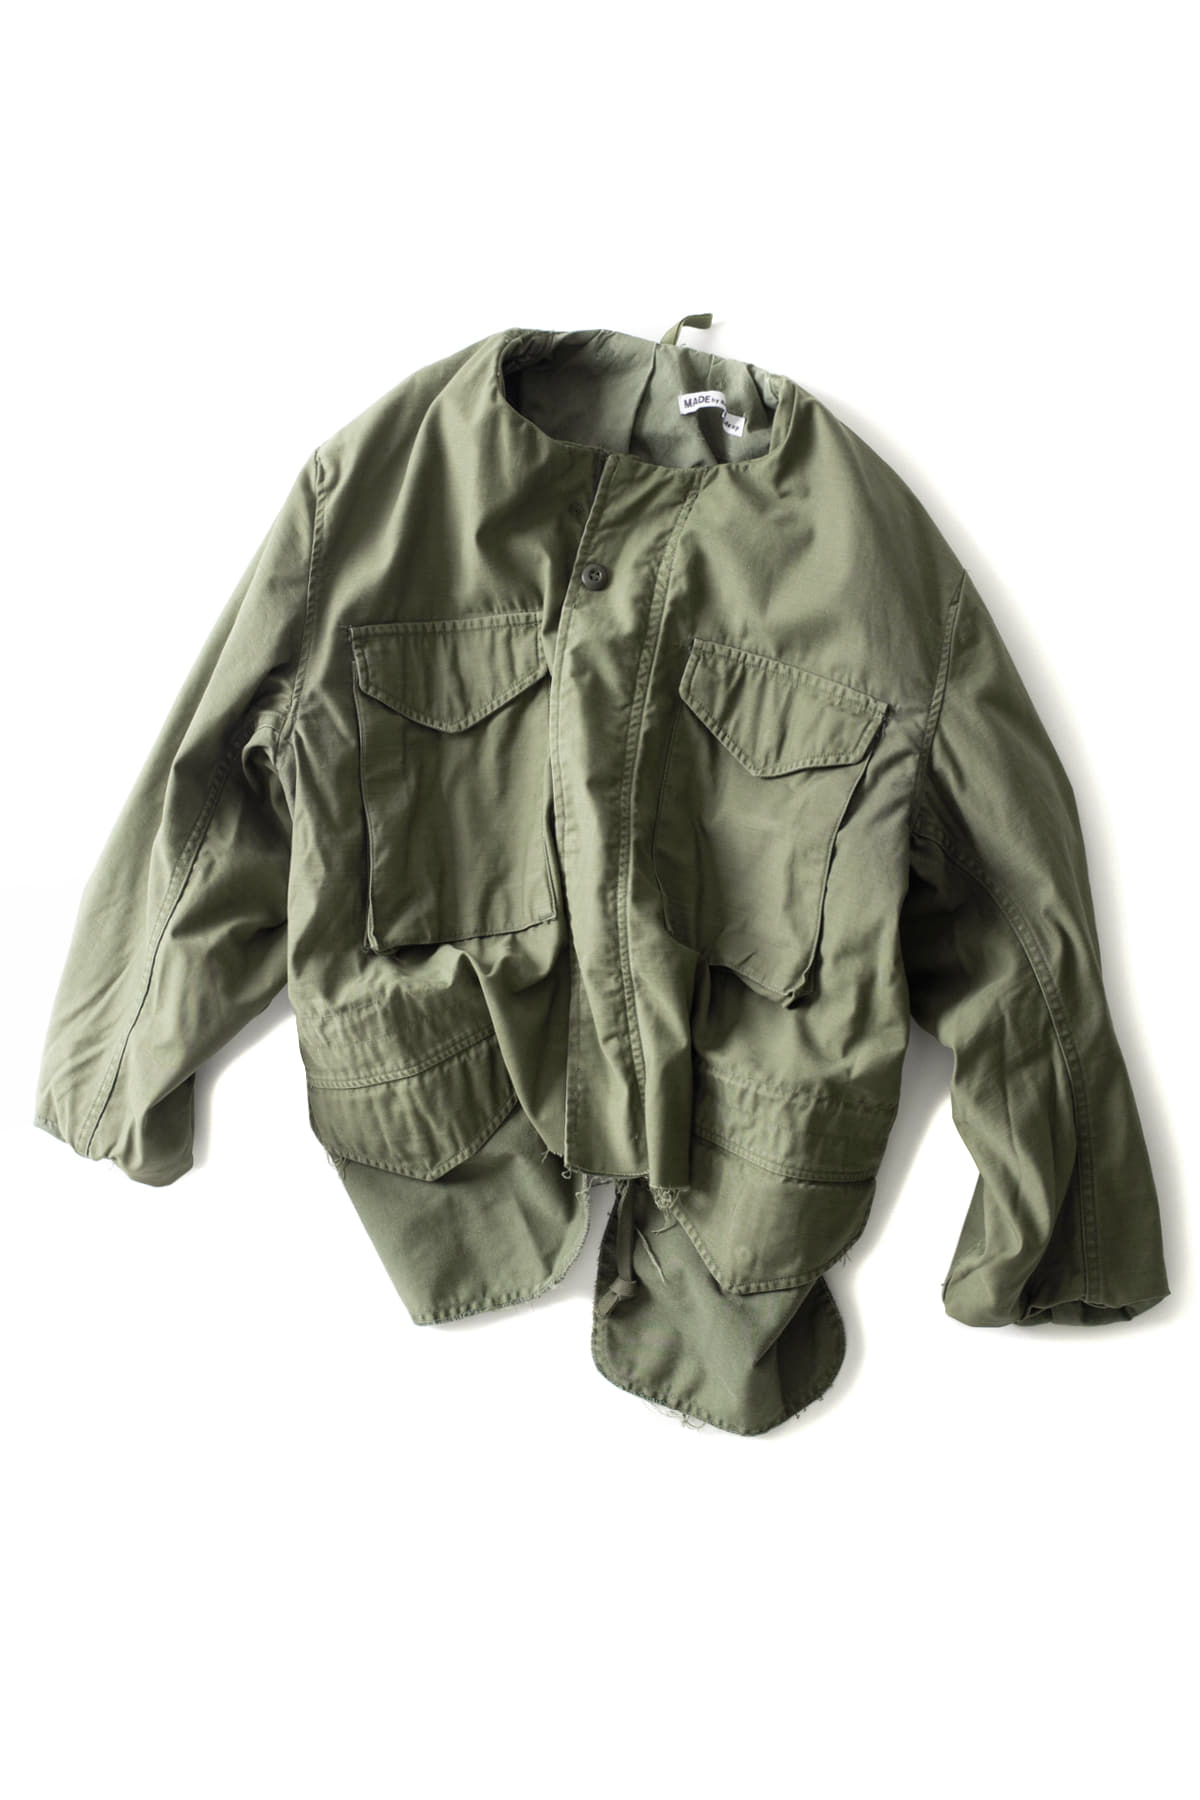 MADE by Sunny side up : M-65 Short Jacket (A)